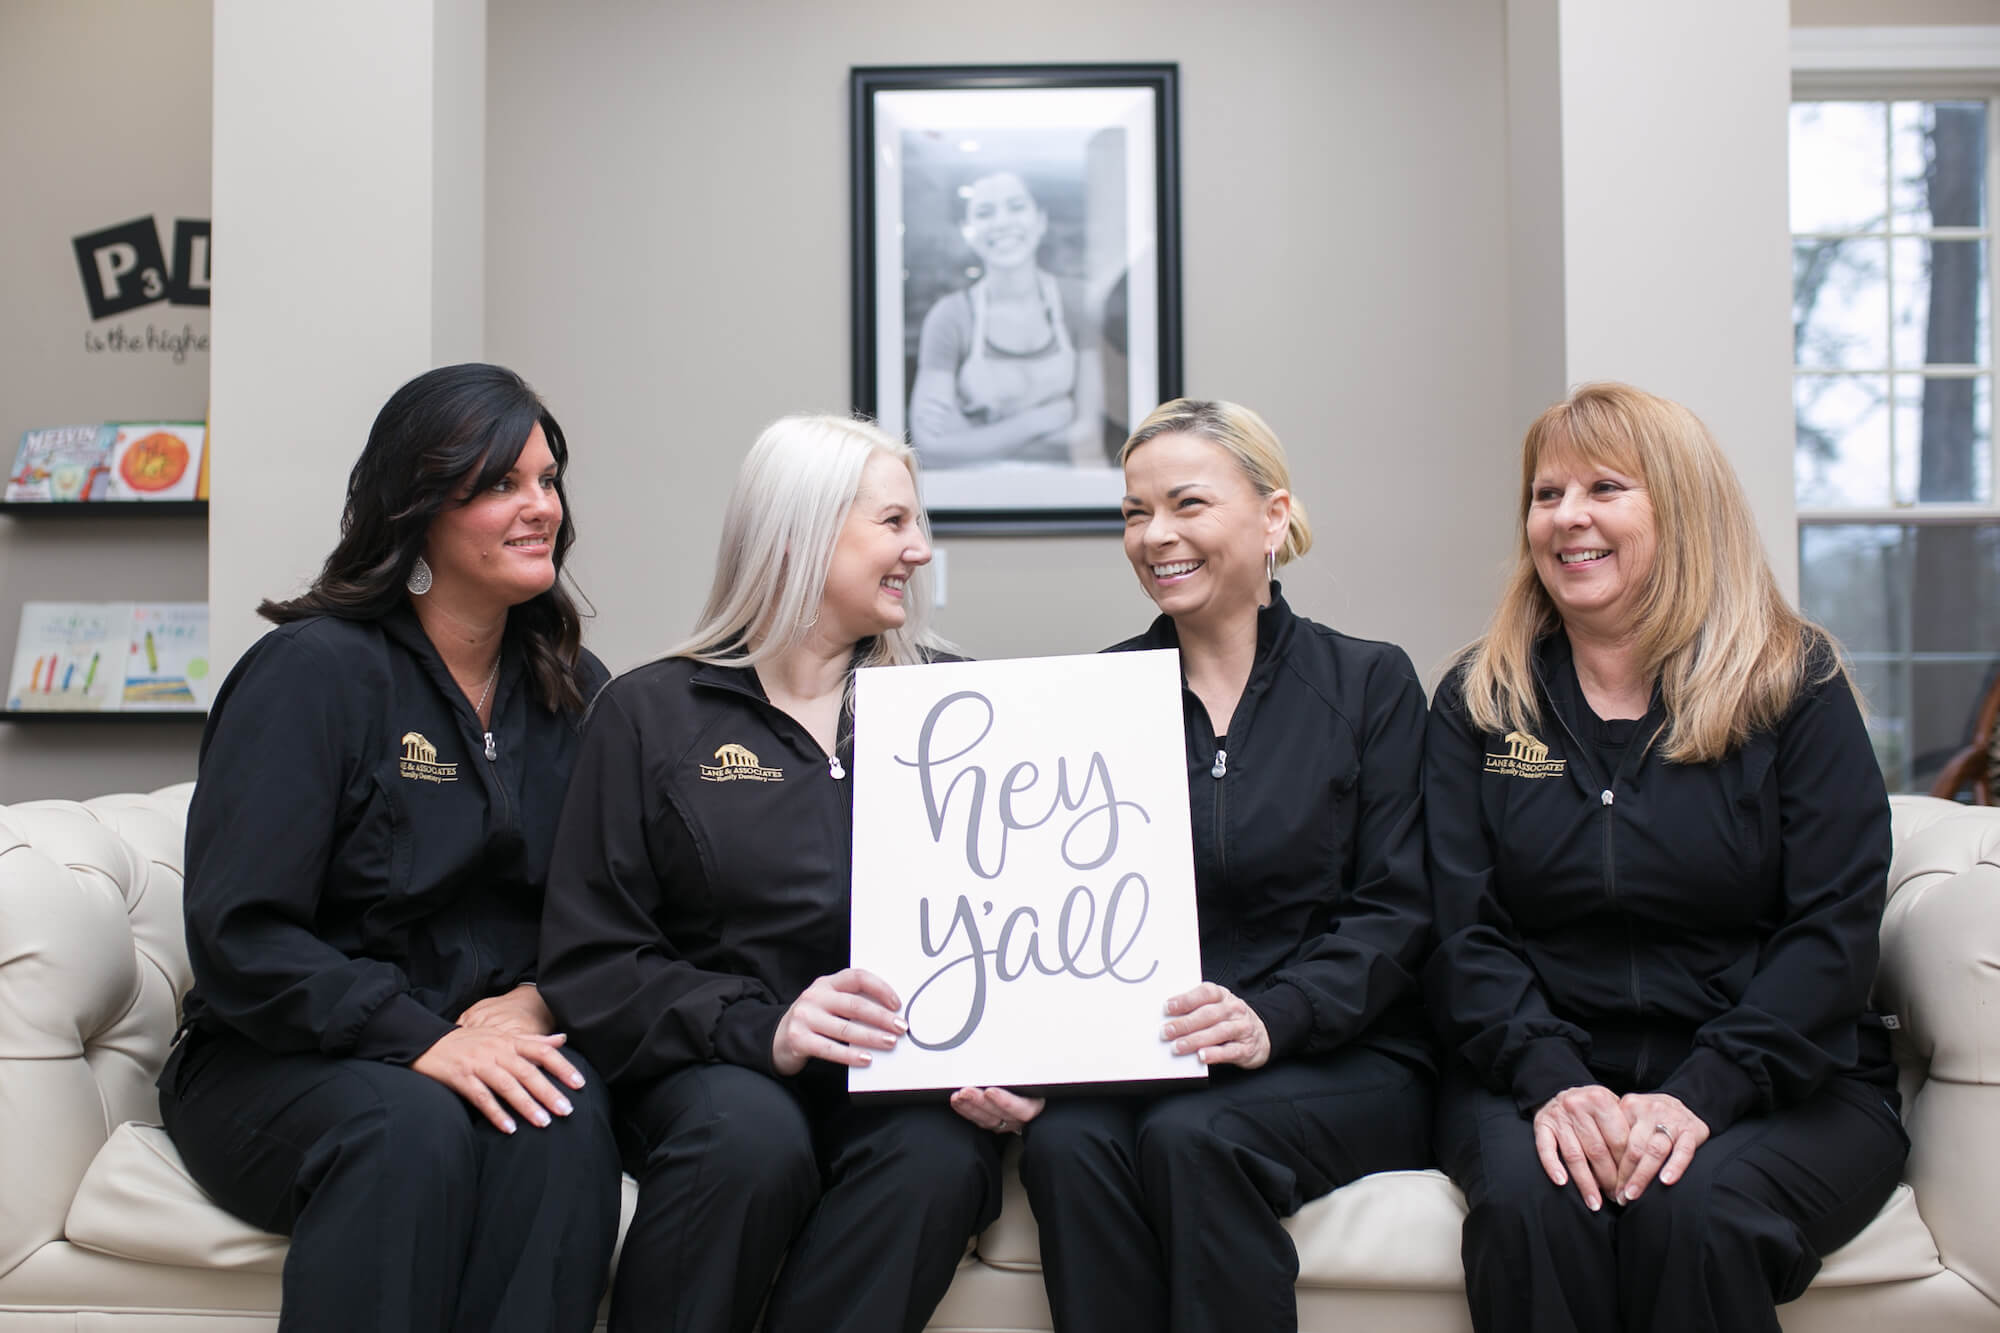 """Southern Pines Dental staff holding sign that says """"Hey y'all"""" laughing"""